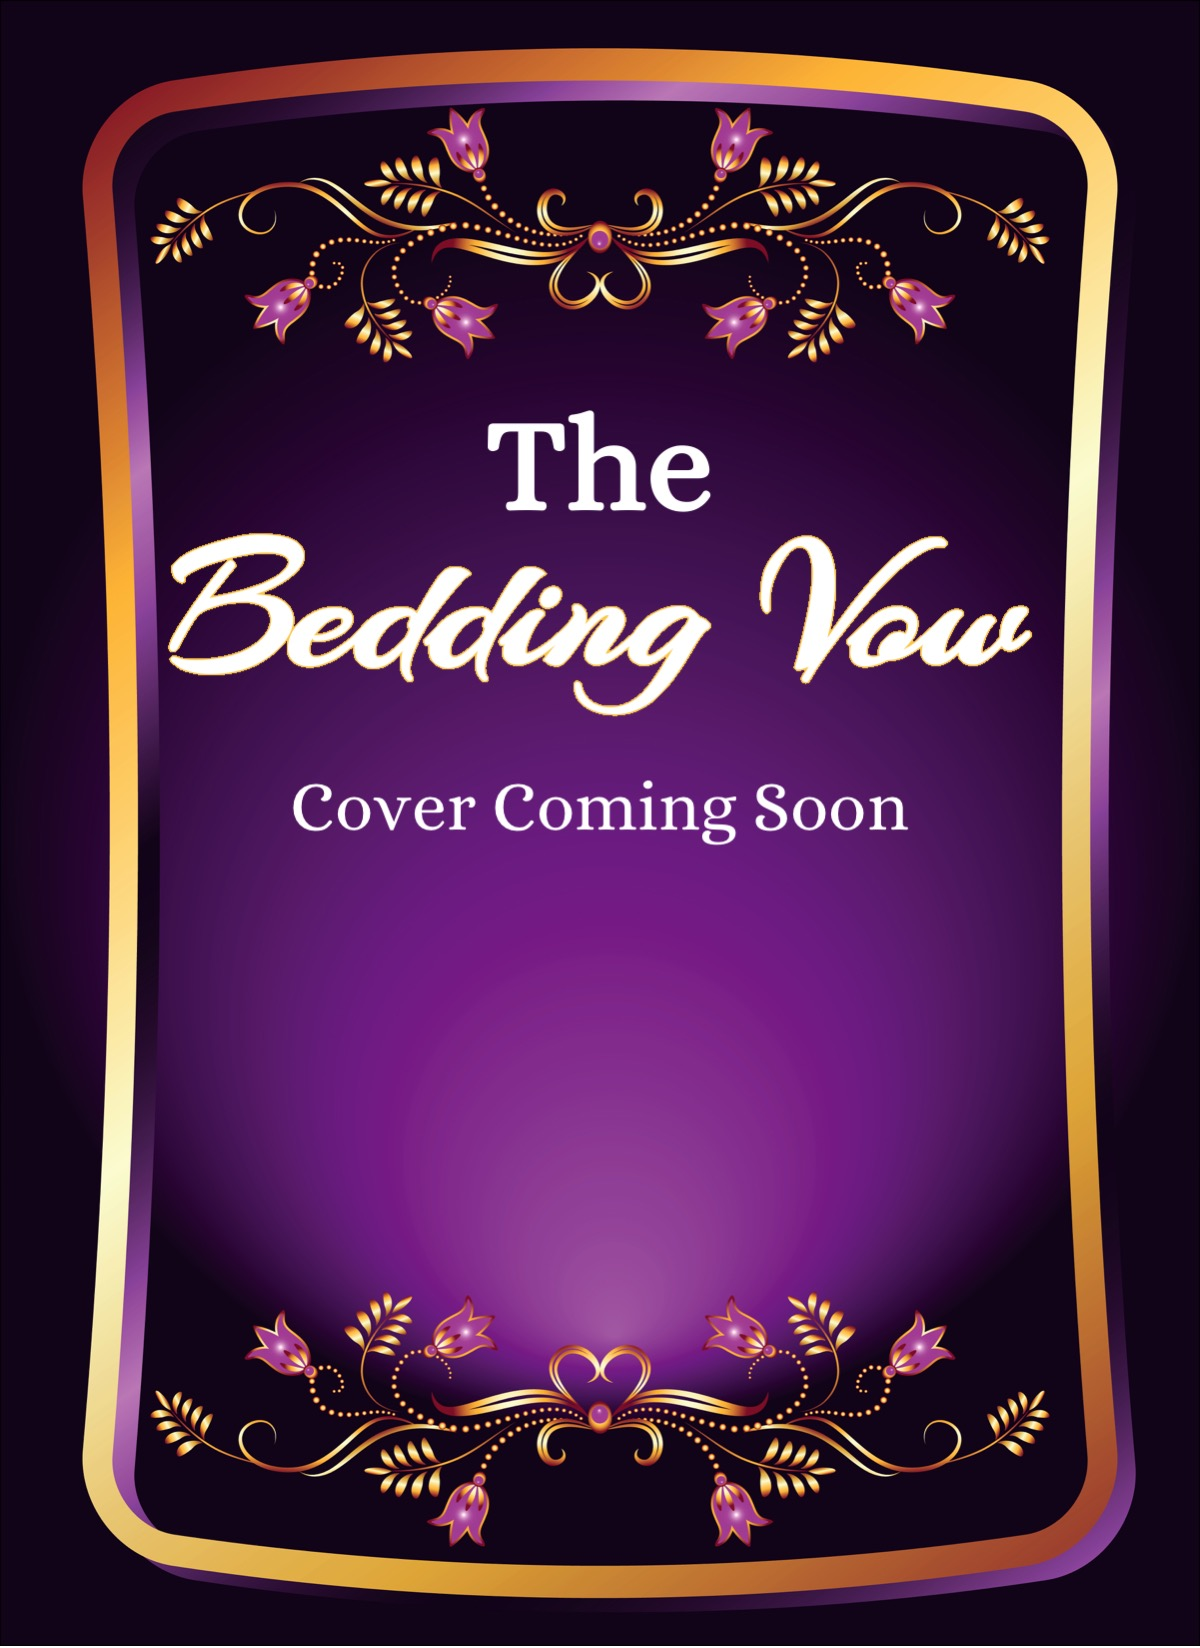 The Bedding Vow by Jackie Barbosa